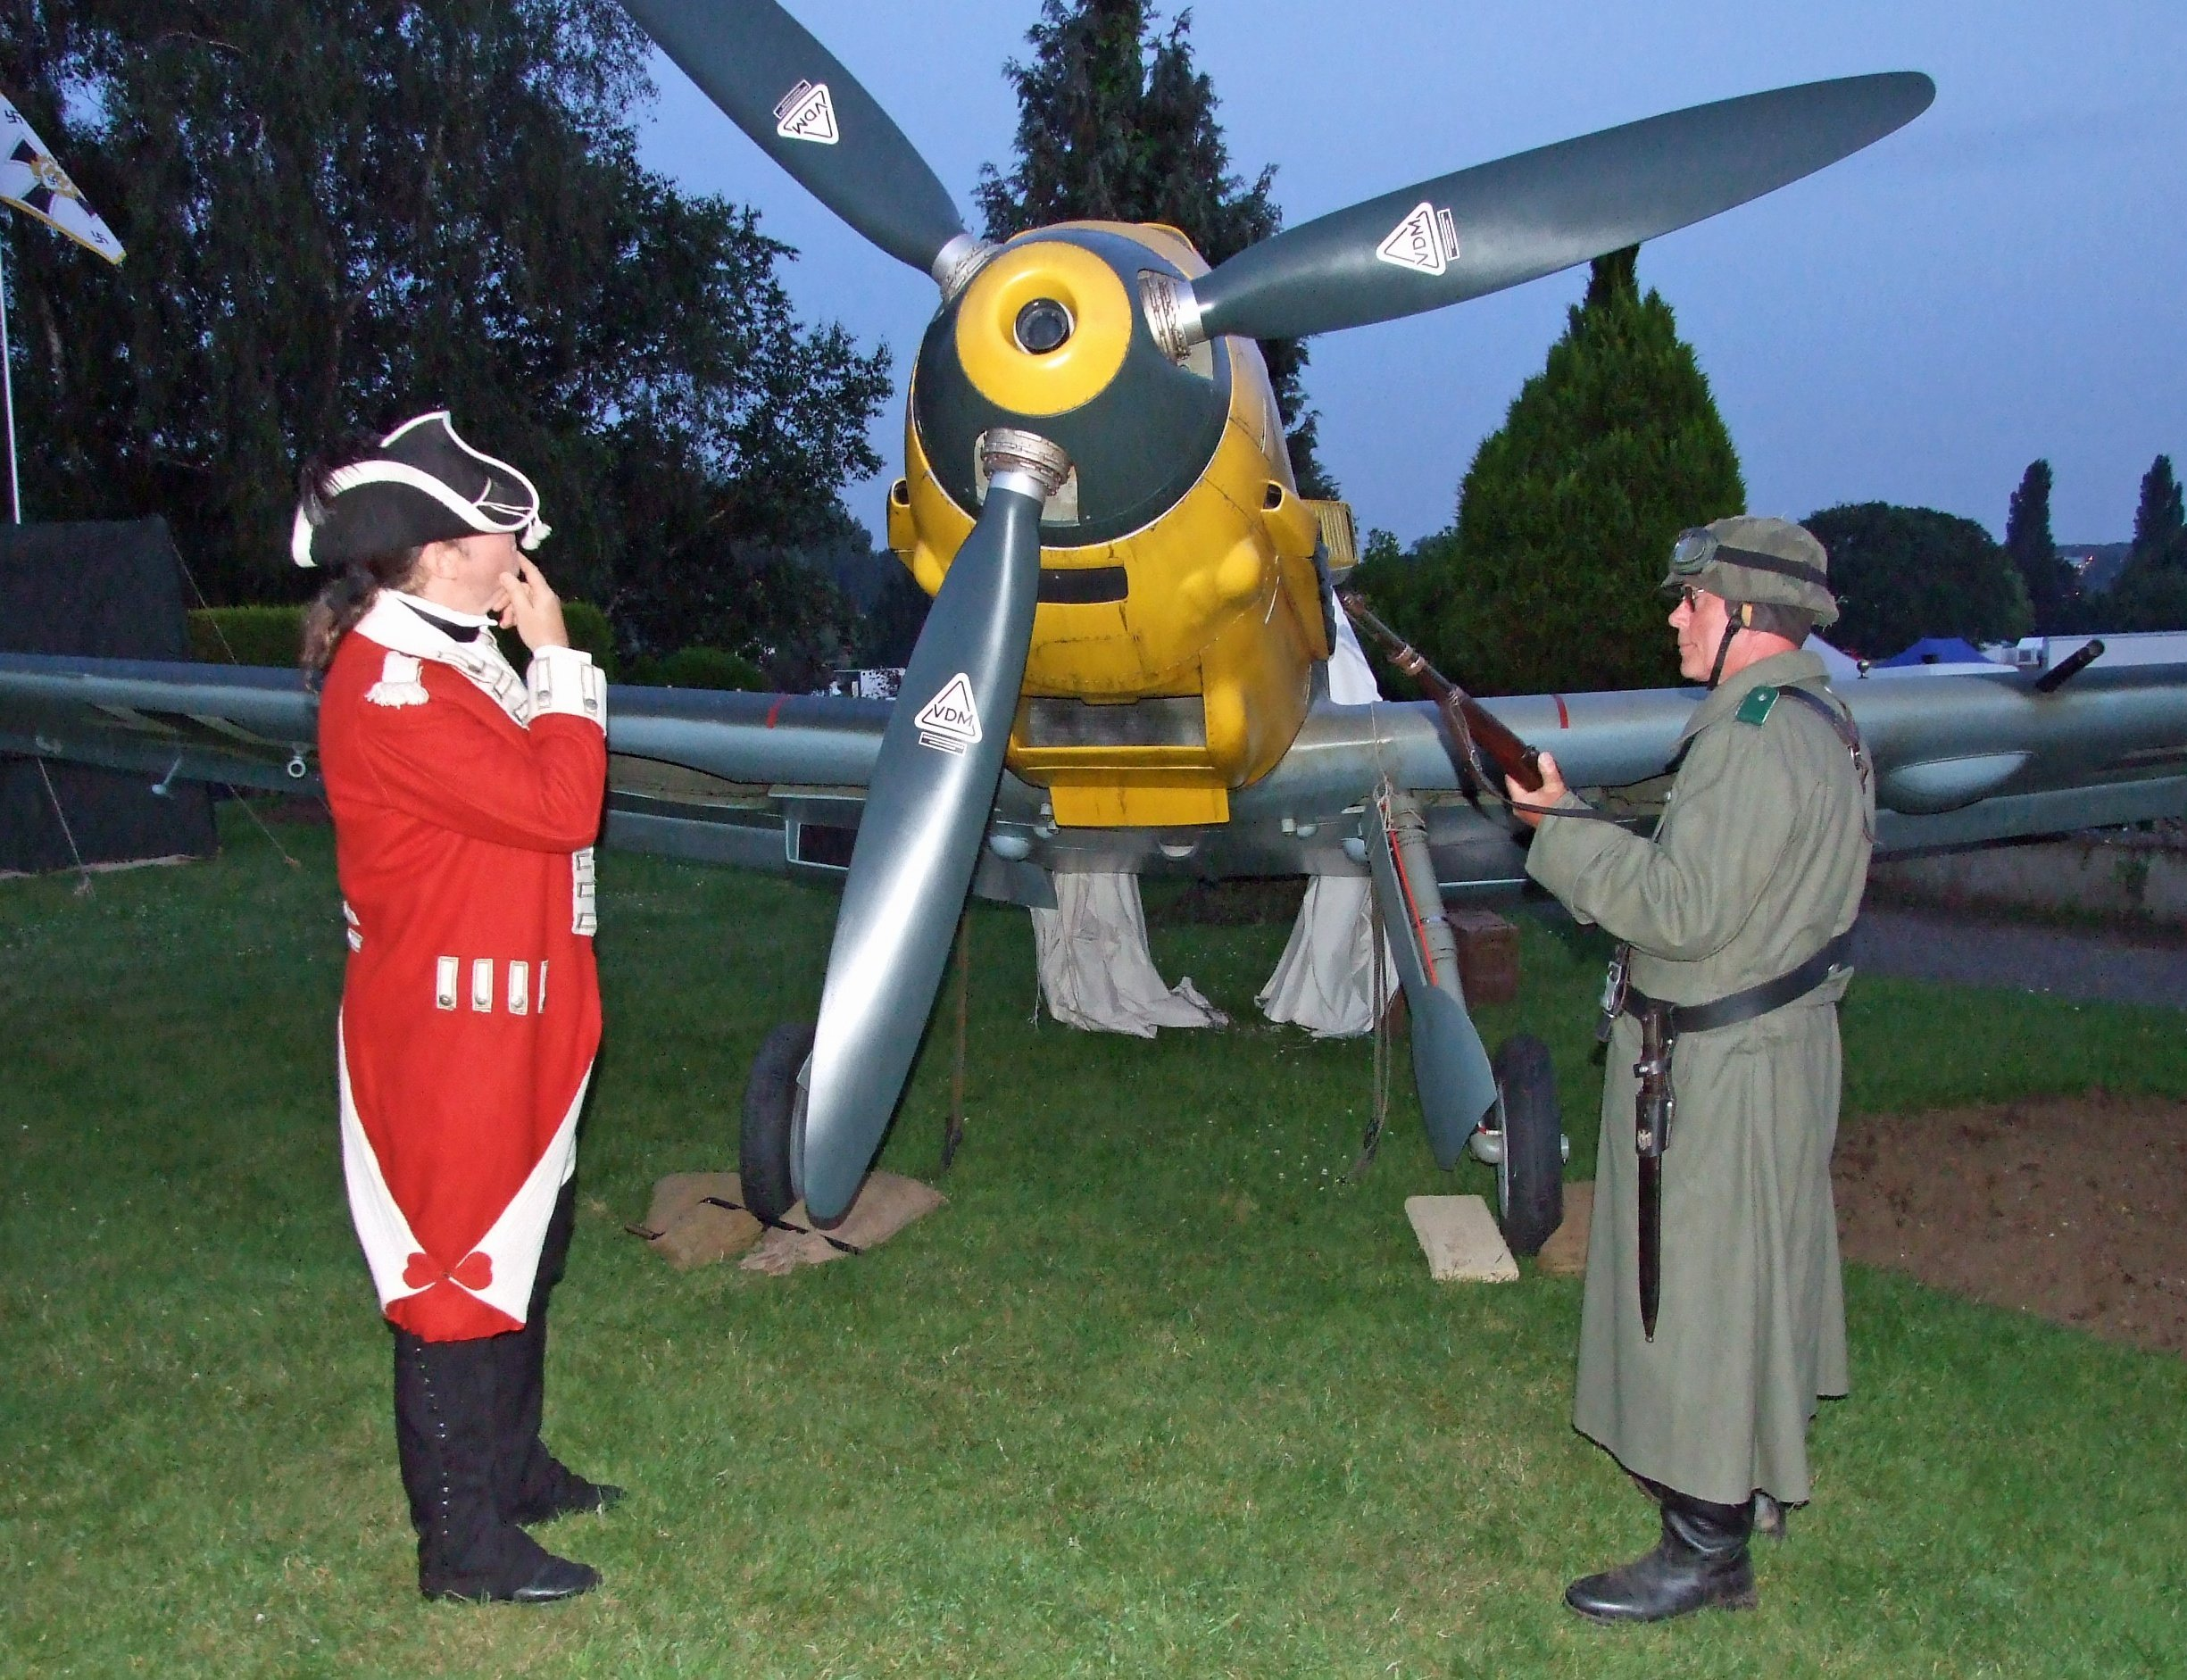 Red Coat soldier is understandably puzzled by the Bf109!